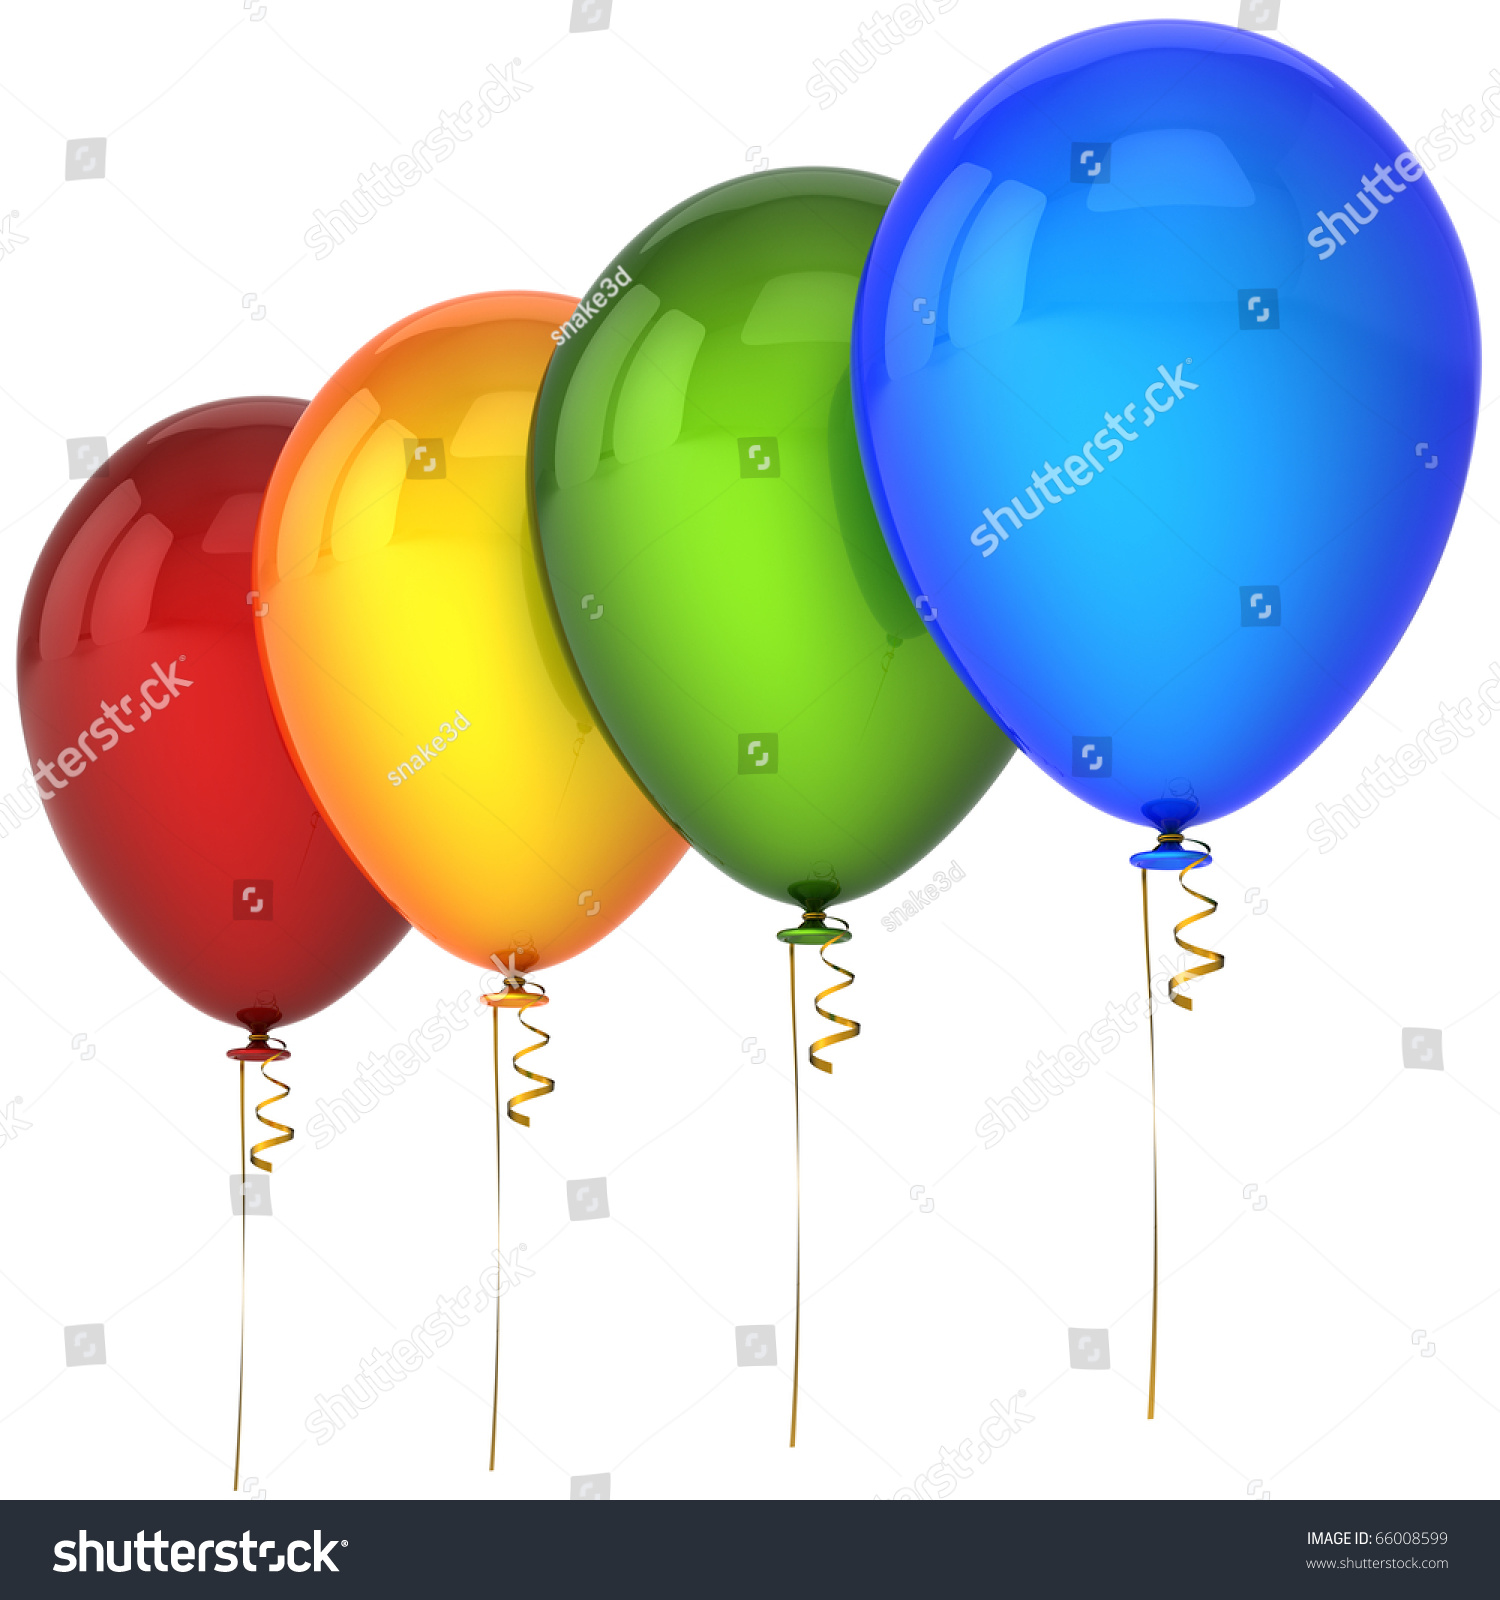 Green and blue balloons - Party Birthday Balloons Red Orange Green Blue Four 4 Helium Balloon Decoration Blank New Year S Eve